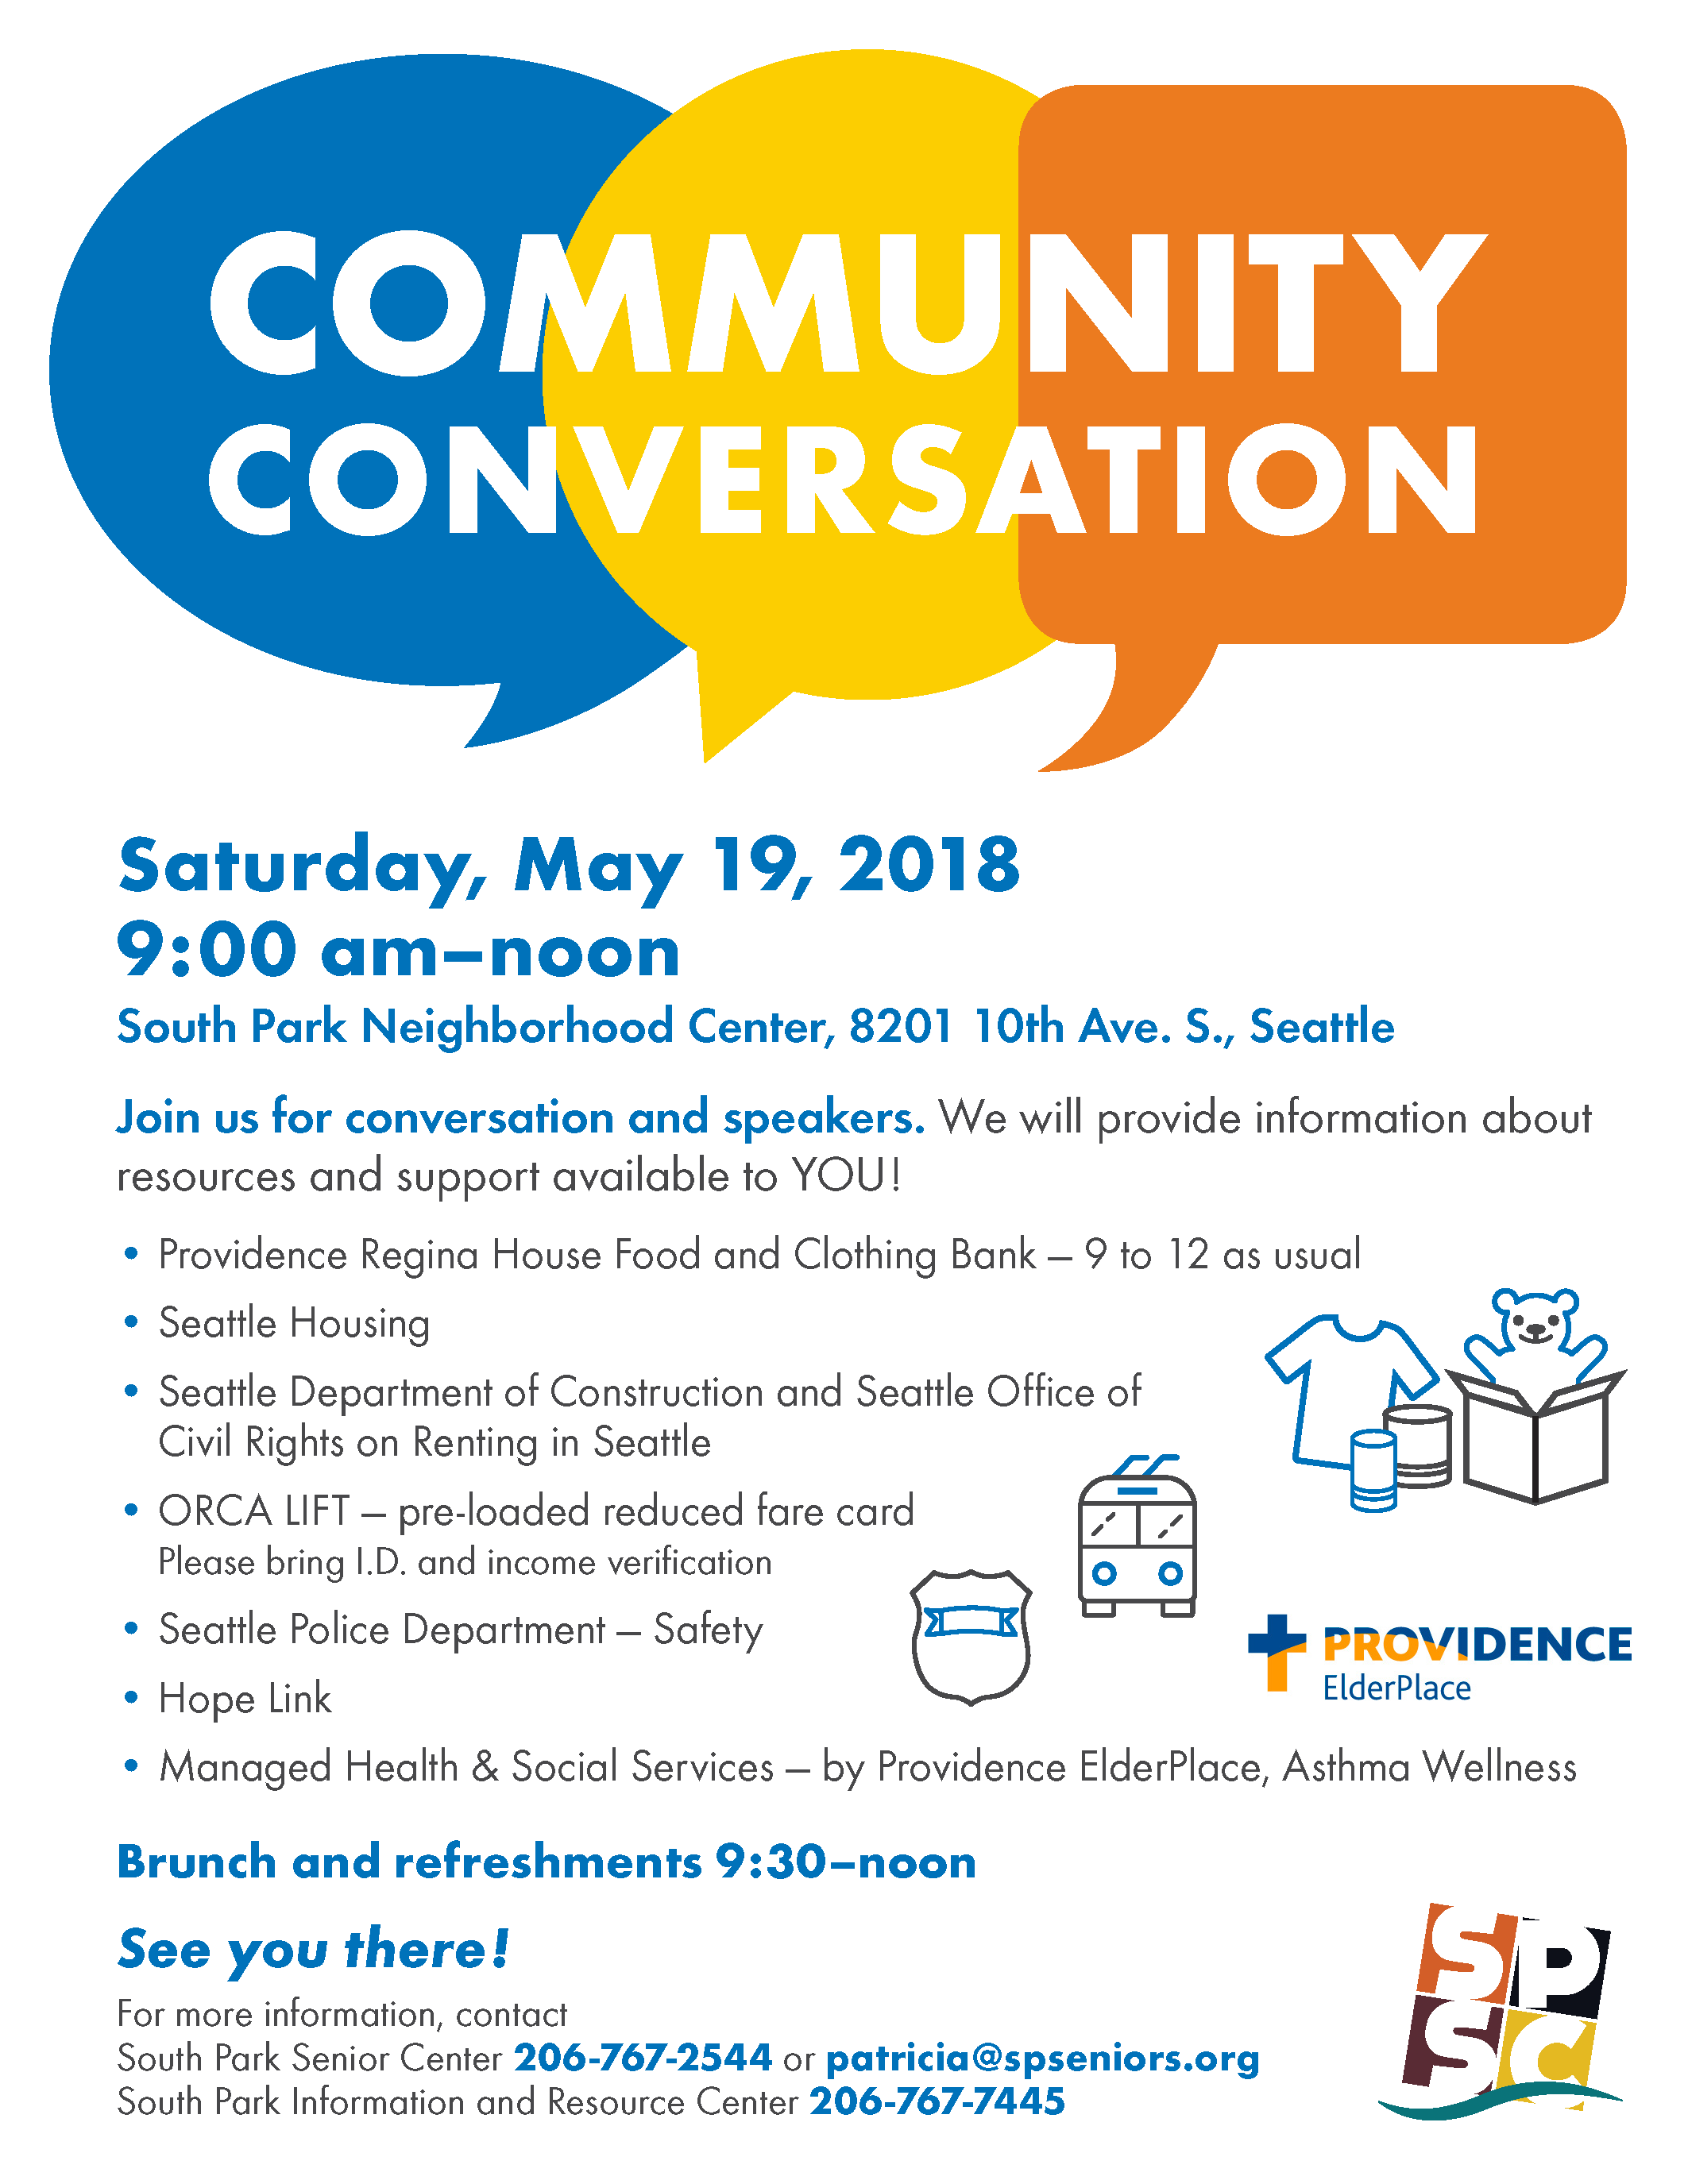 Saturday, May 19th, join us at the South Park Neighborhood Center for refreshments and information about services available